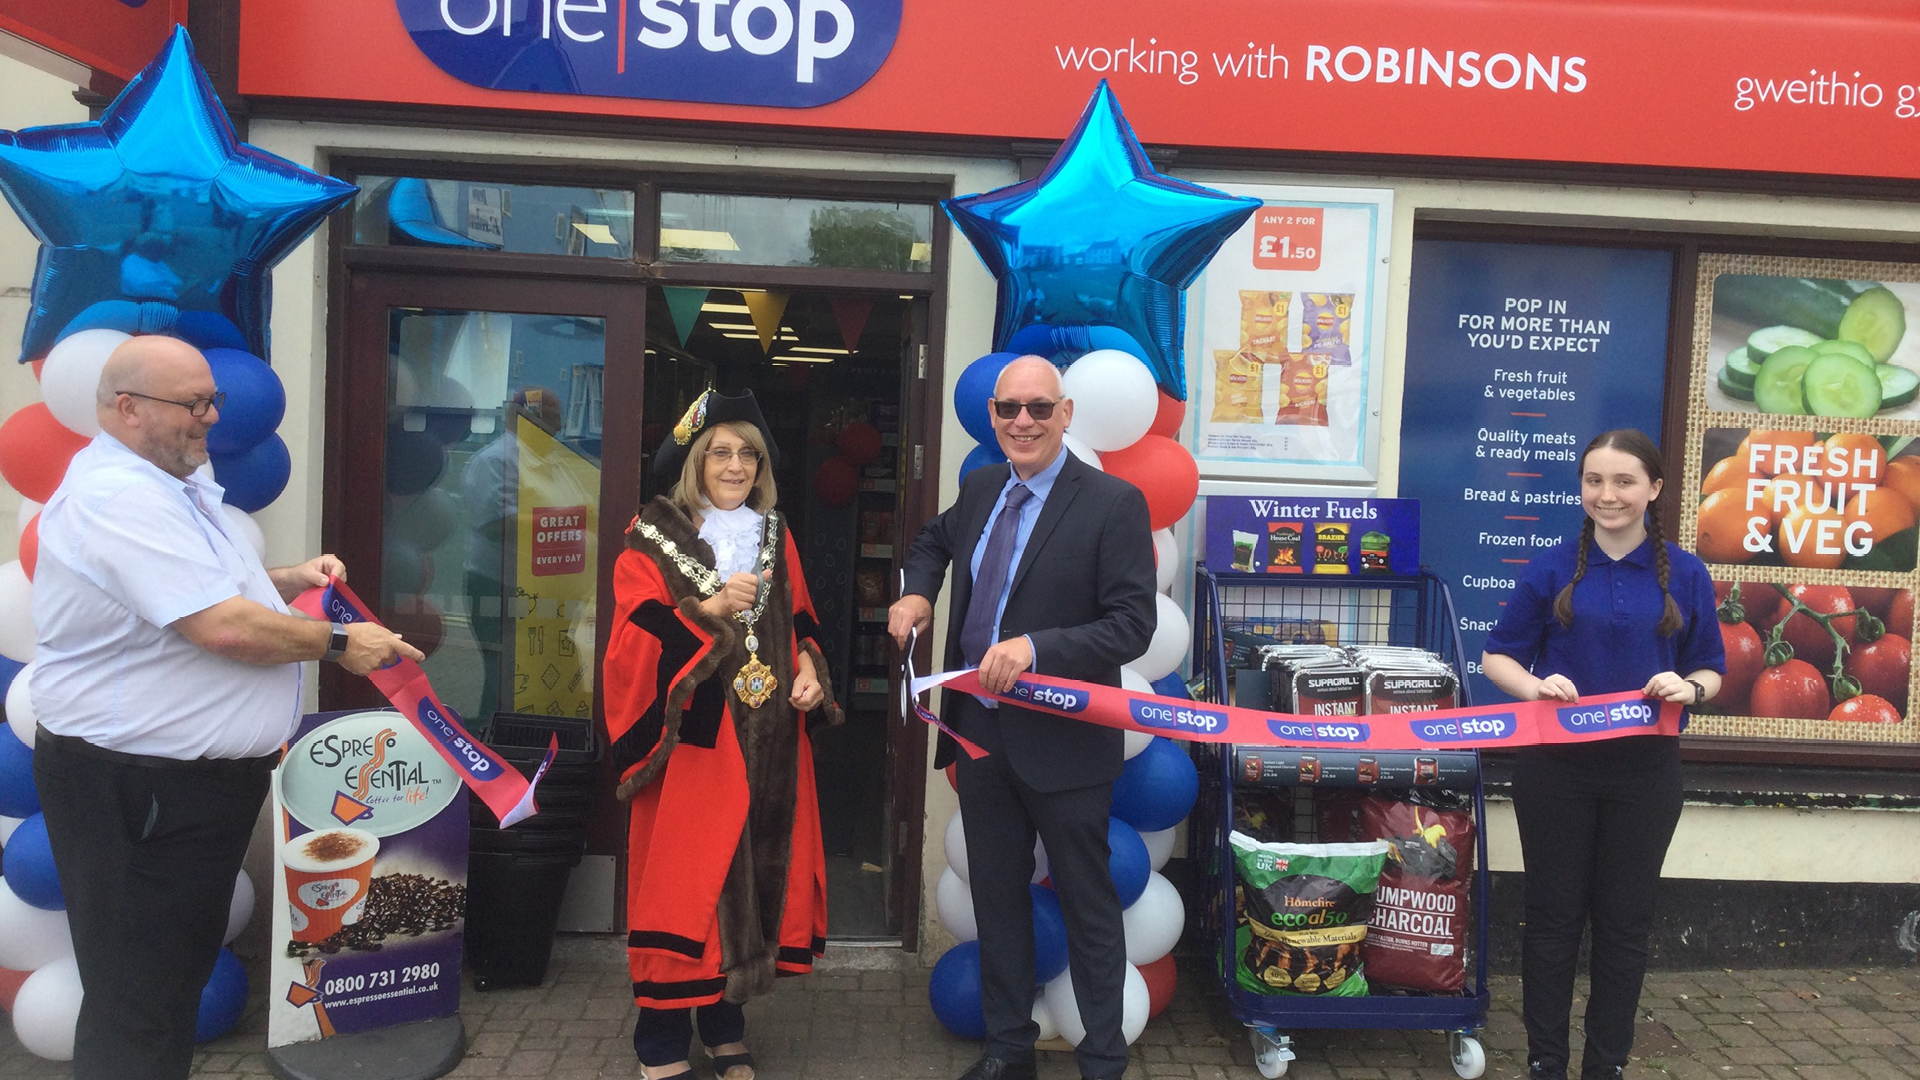 Retailer launches 3 One Stop stores in one day!